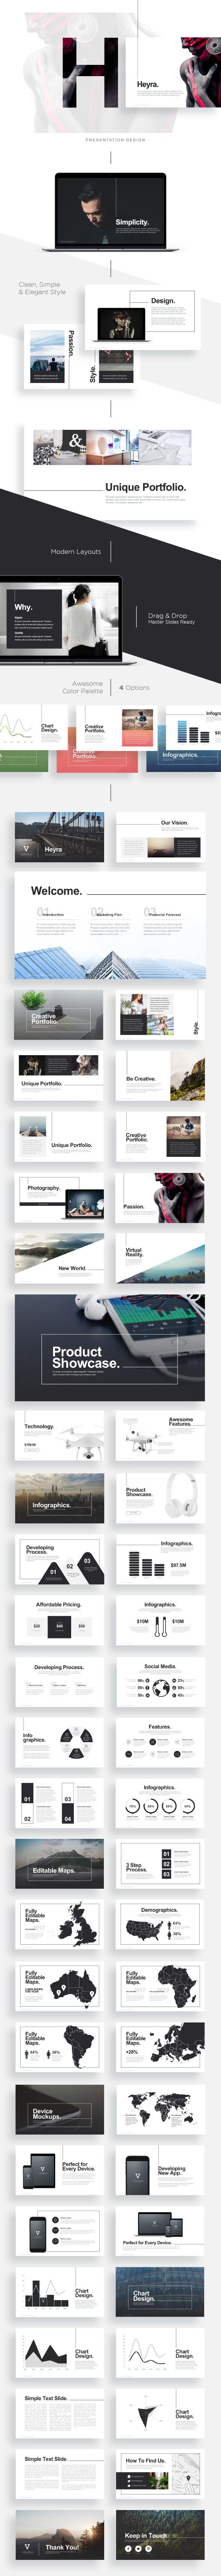 Heyra Powerpoint Template — PPTX #powerpoint #heyra • Download ➝ https://graphicriver.net/item/heyra-powerpoint-template/19618886?ref=pxcr